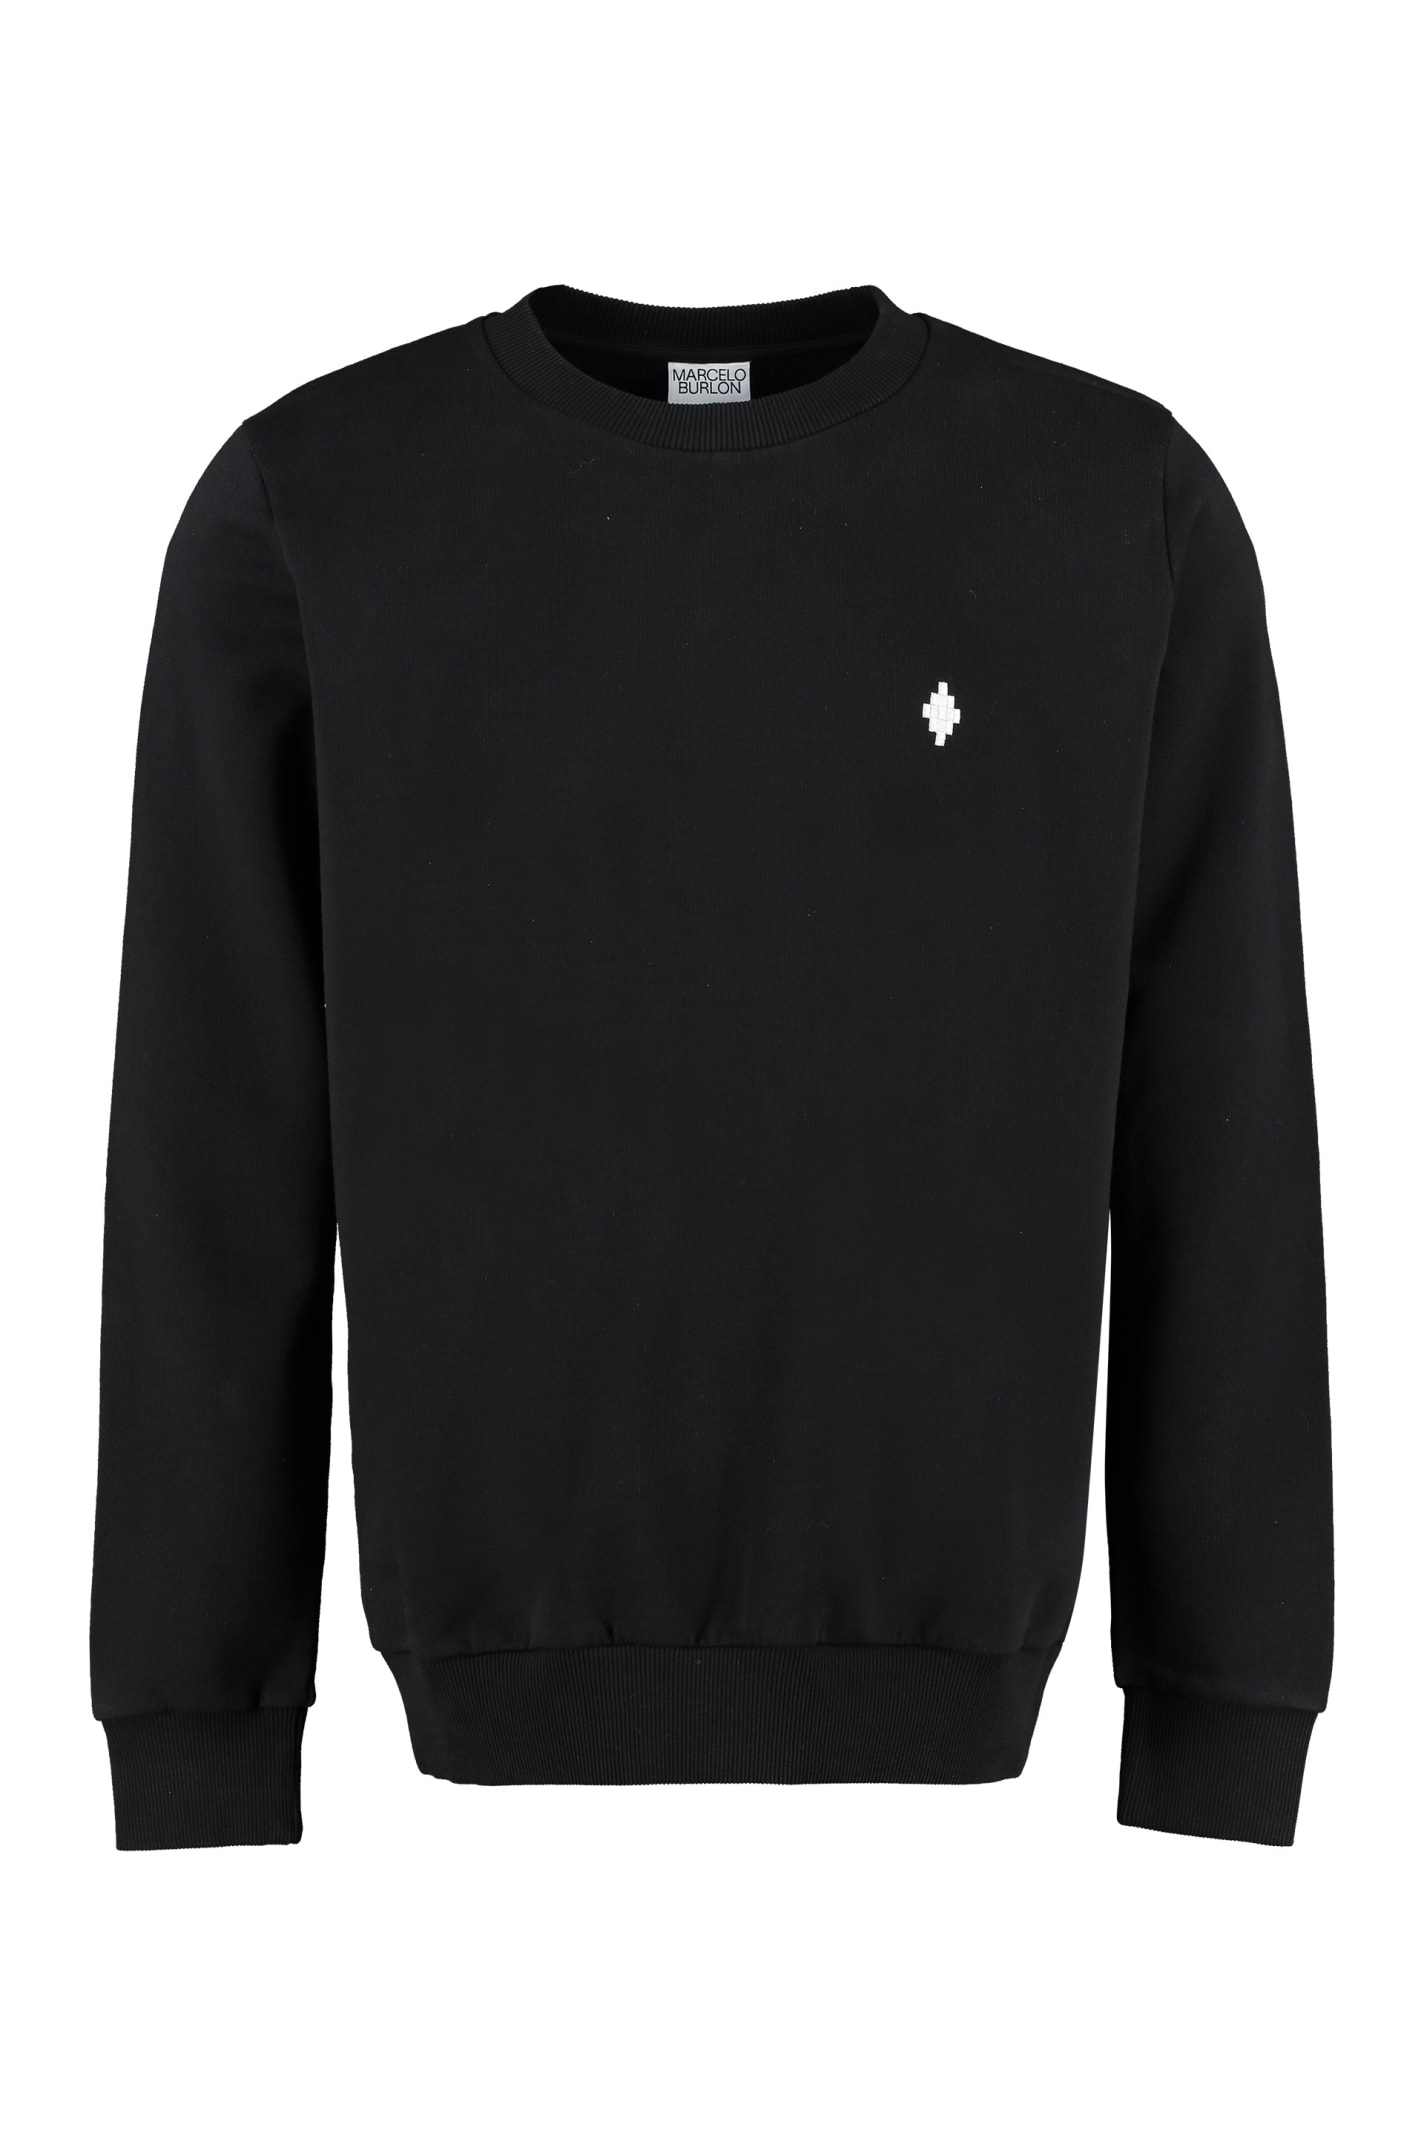 Marcelo Burlon County Of Milan Cotton Crew-neck Sweatshirt In Black